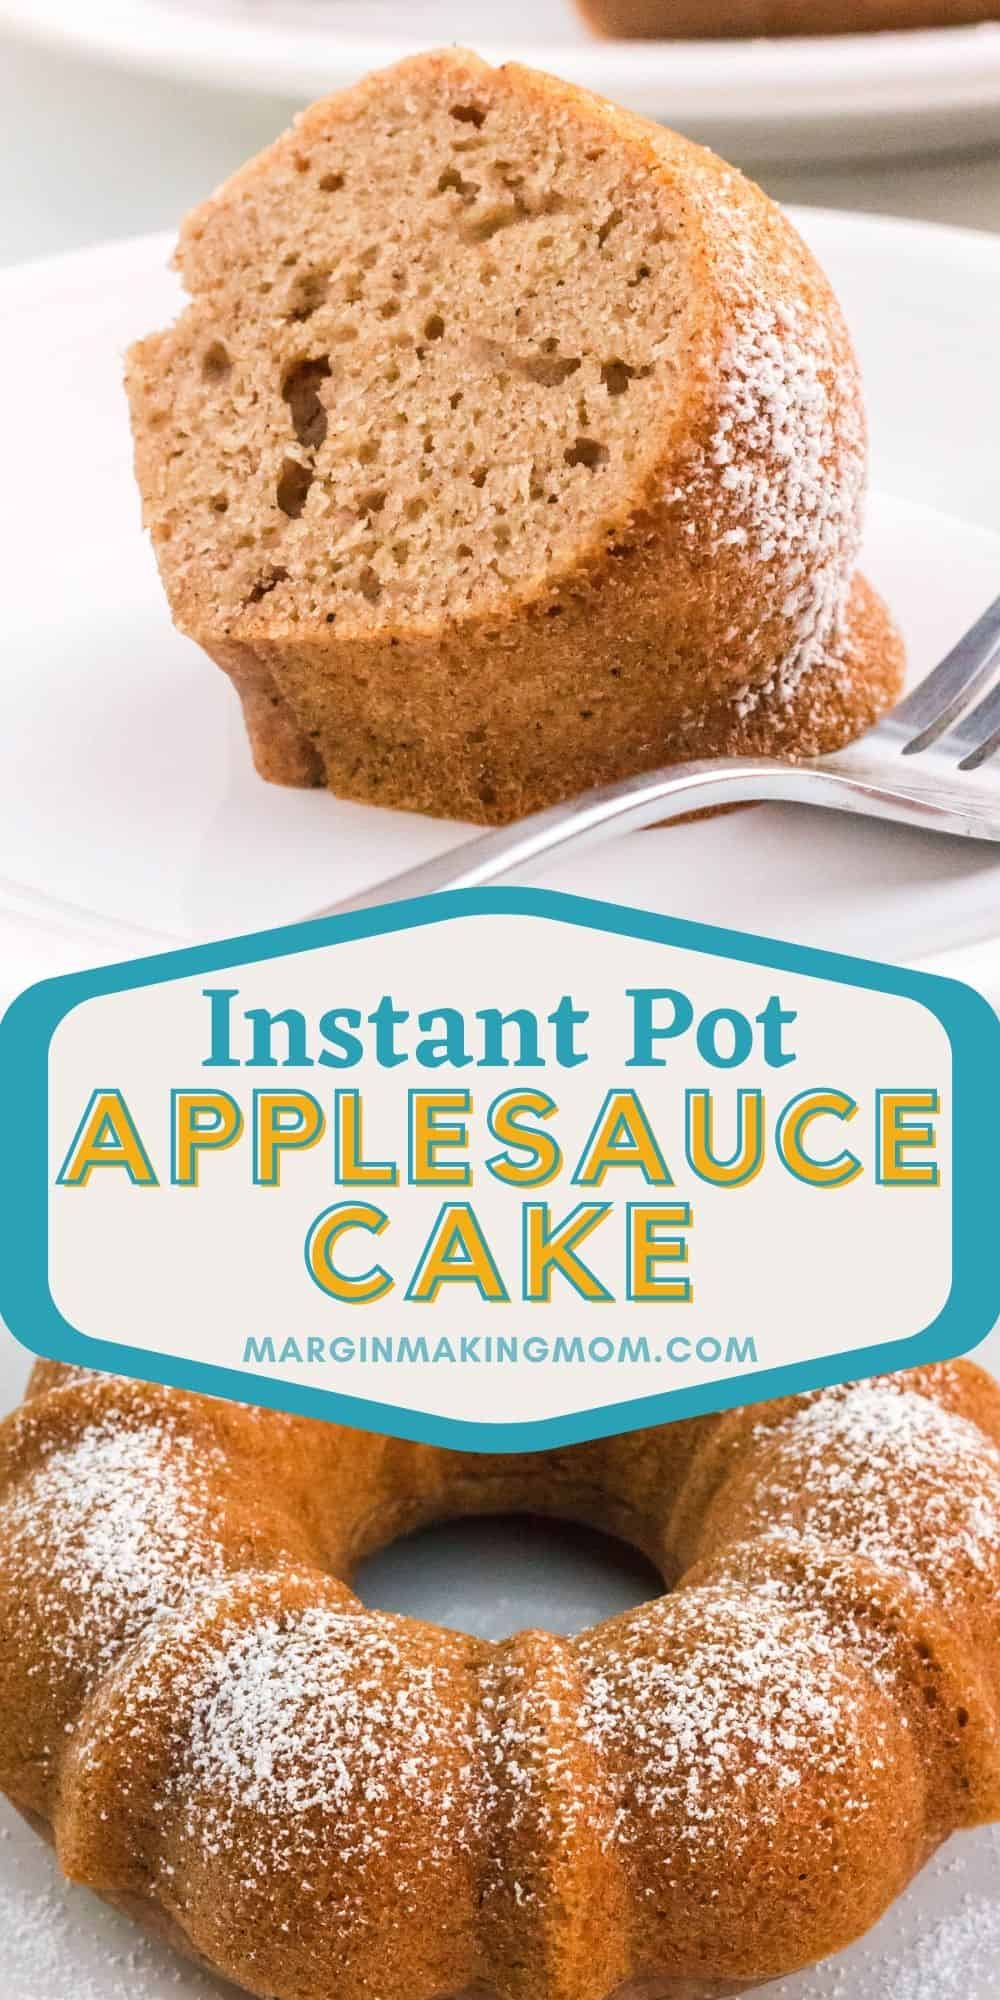 collage image featuring two photos of Instant Pot applesauce cake--one is a slice of the cake and the other is the whole cake